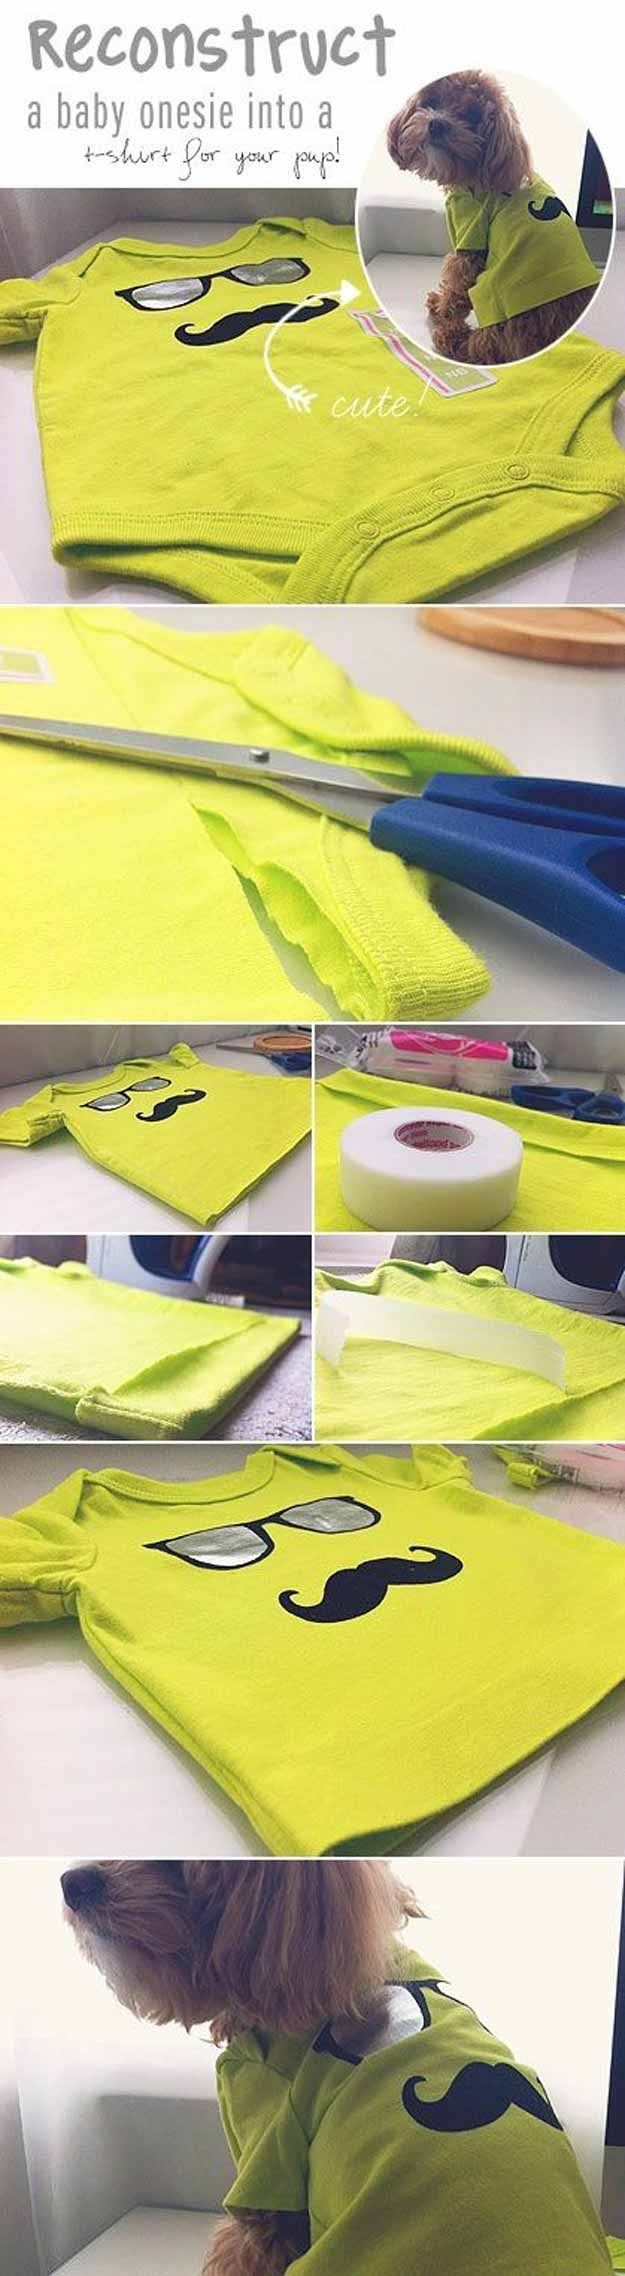 Baby Onesie to Dog Shirt - 12 DIY Dog Clothes and Coats | How To Make Cute Outfits For Your Furry Pet by DIY Ready at http://diyready.com/diy-dog-clothes-and-coats/